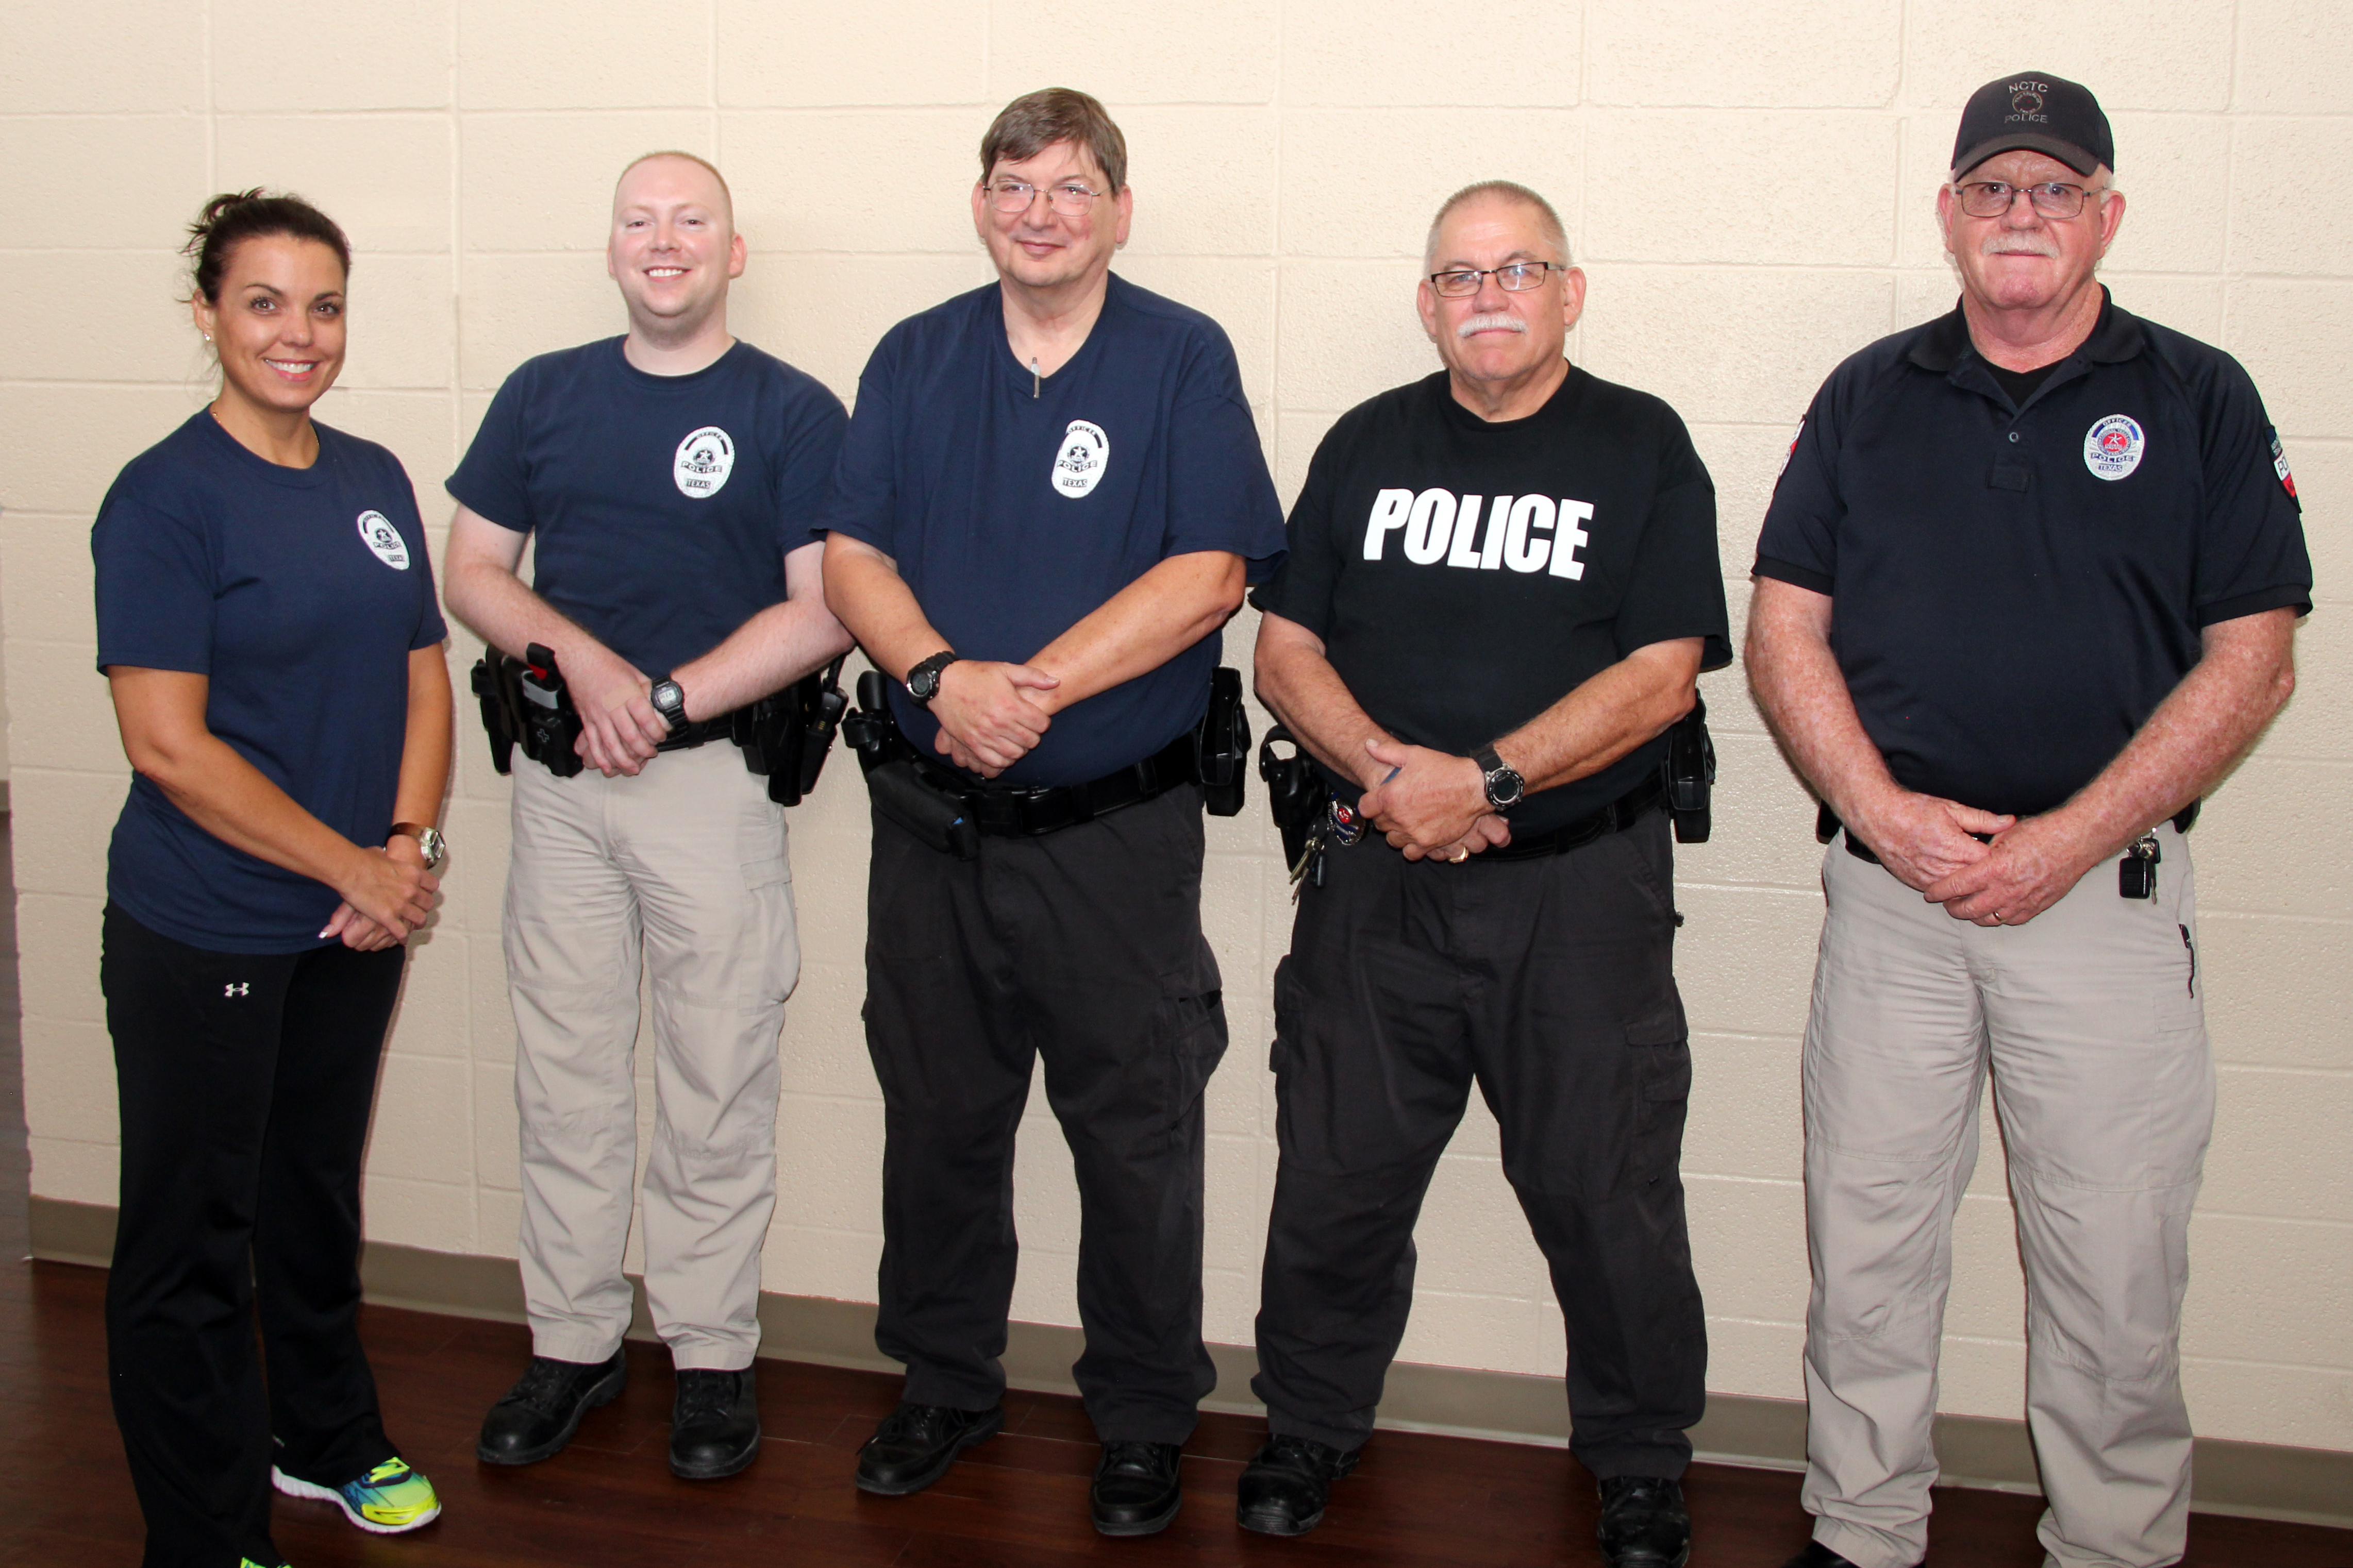 nctc-police-group-photo.jpg